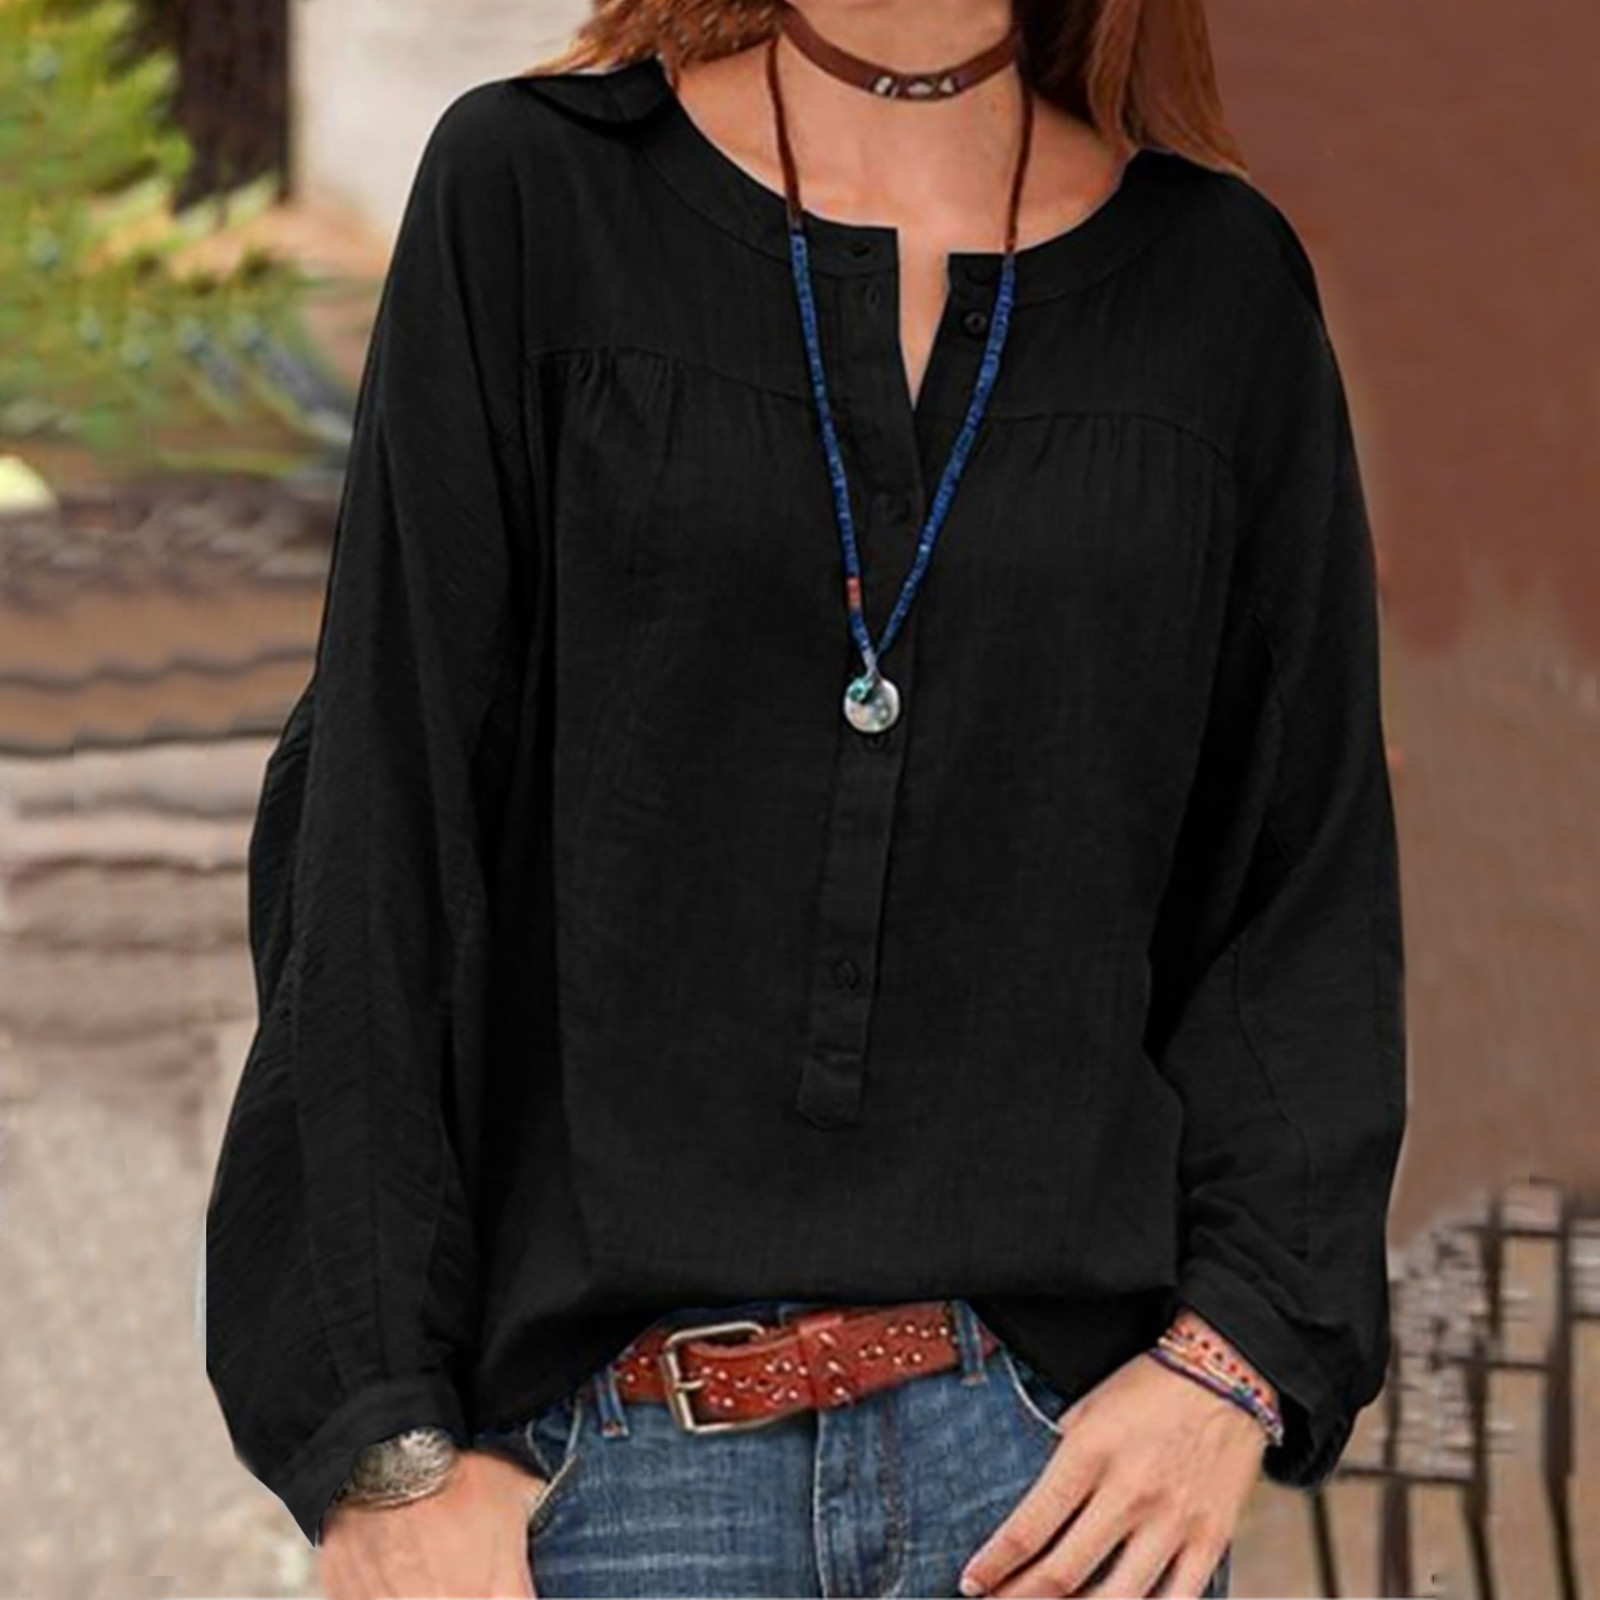 Women Blouses O-neck Solid Open Tube Button Fashion Casual Long Sleeve Blous T Shirt For Women Clothing Blusas Camisas Mujer